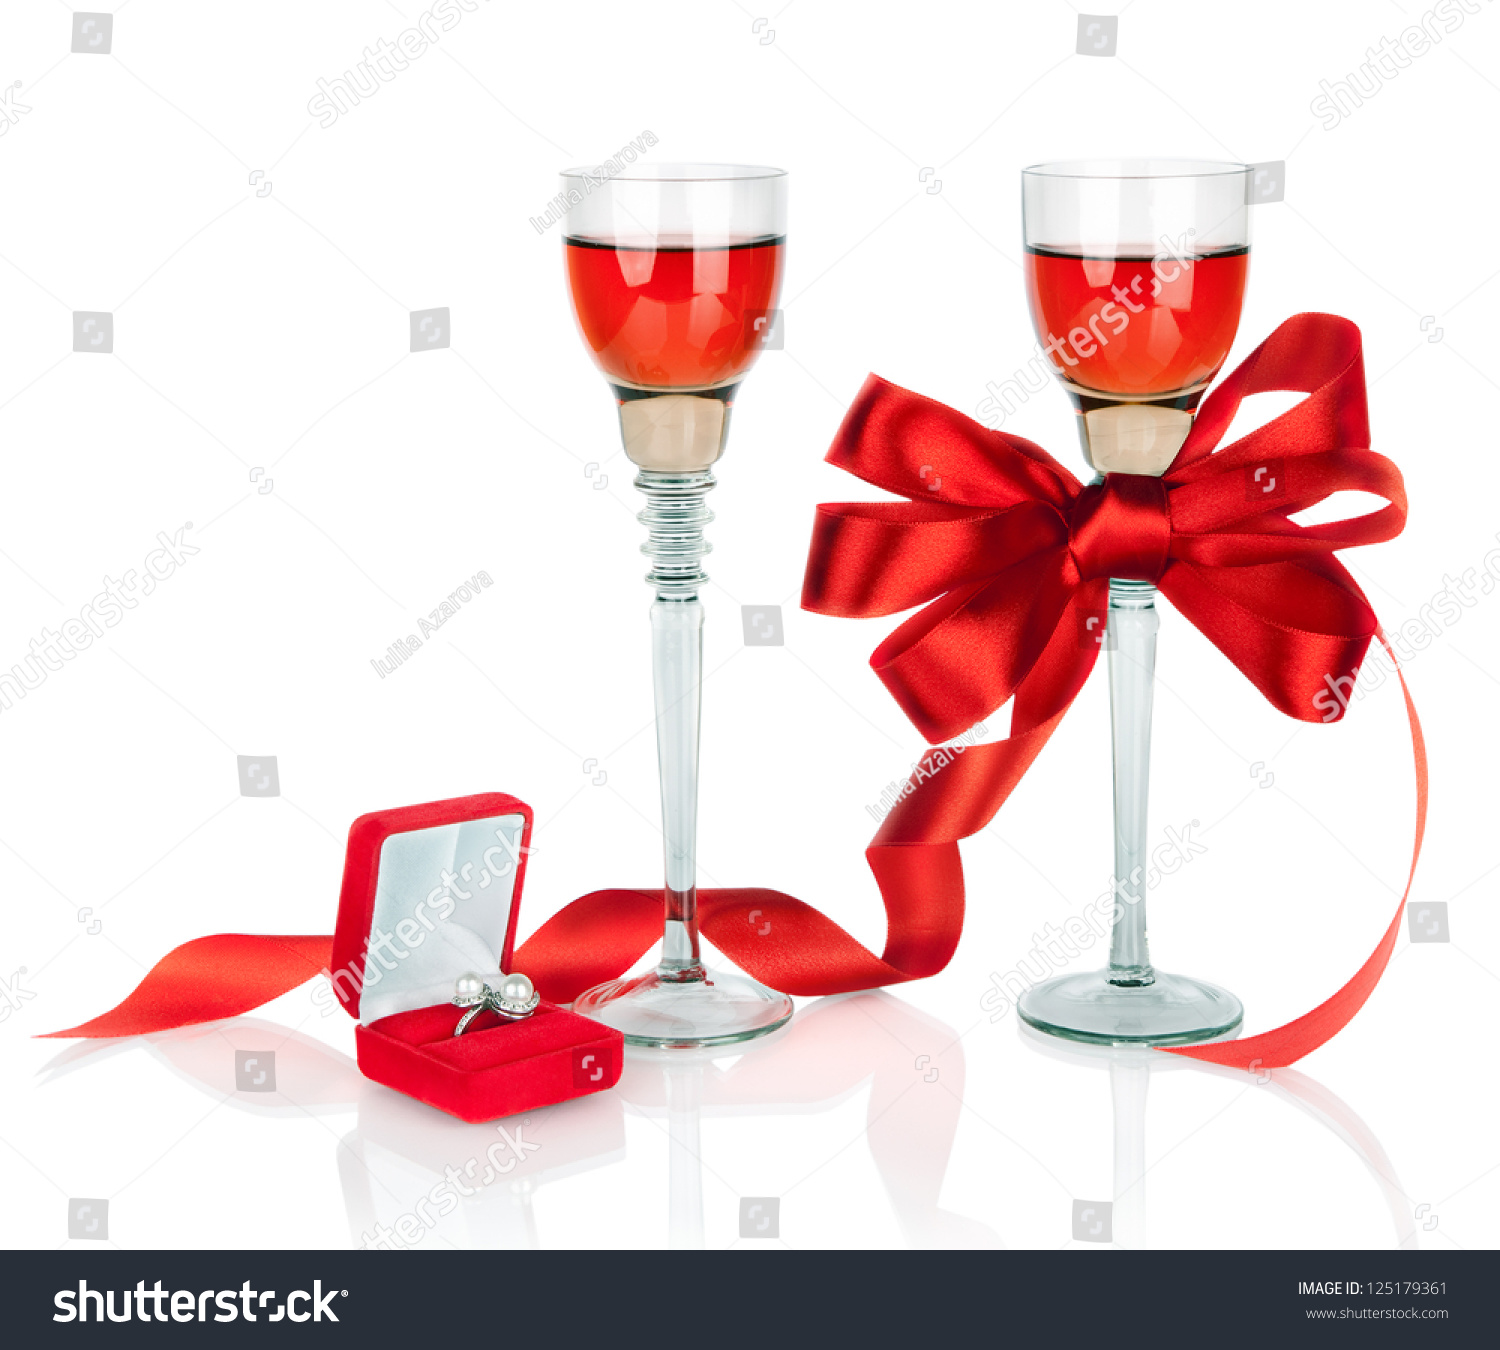 Red Or White Wine For Wedding Gift : Wine in two wineglasses with red satin bow and wedding rings in gift ...